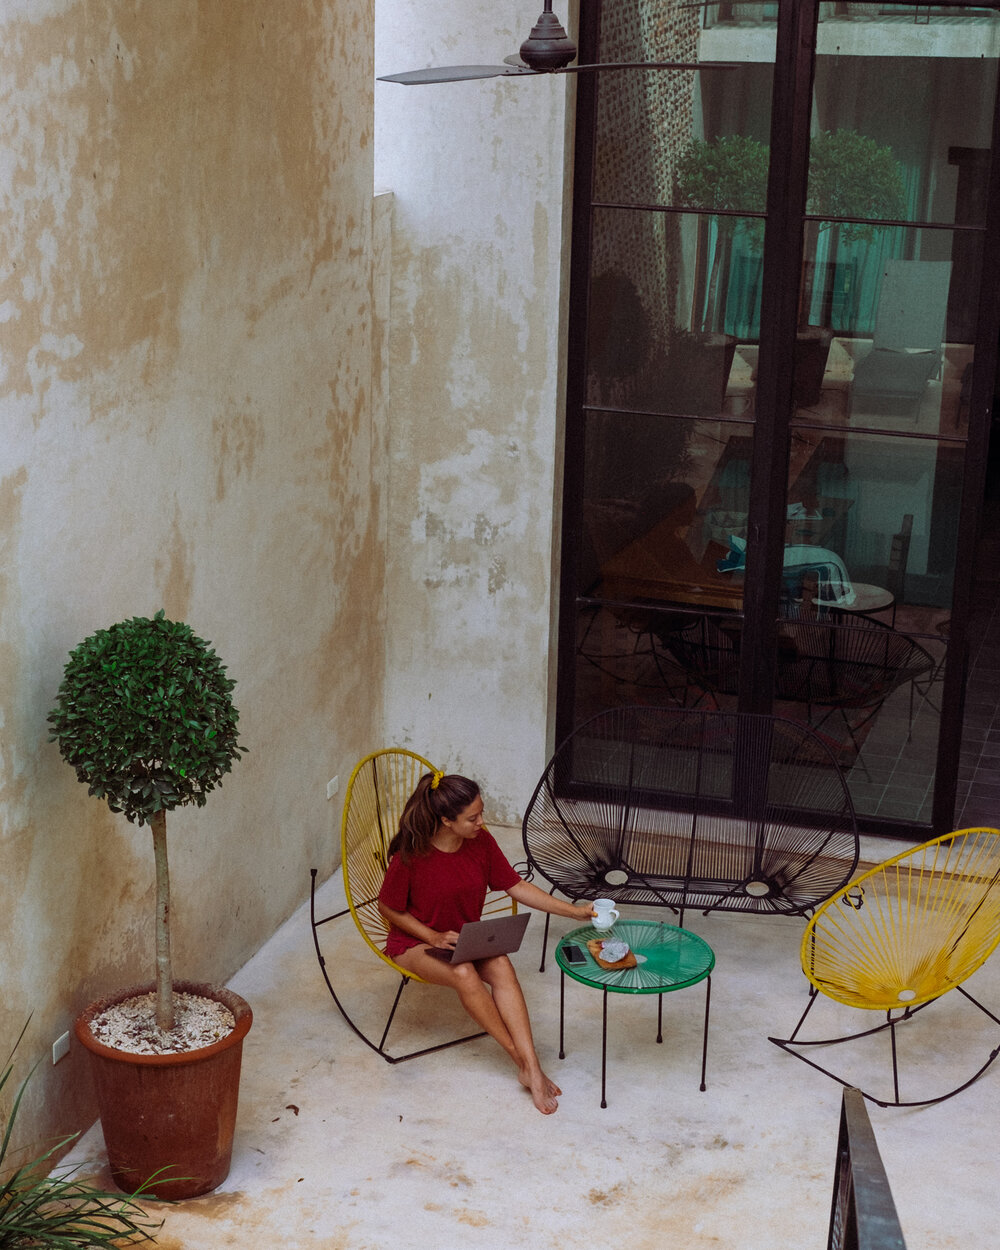 Rachel Off Duty: Where to Stay in Merida, Mexico